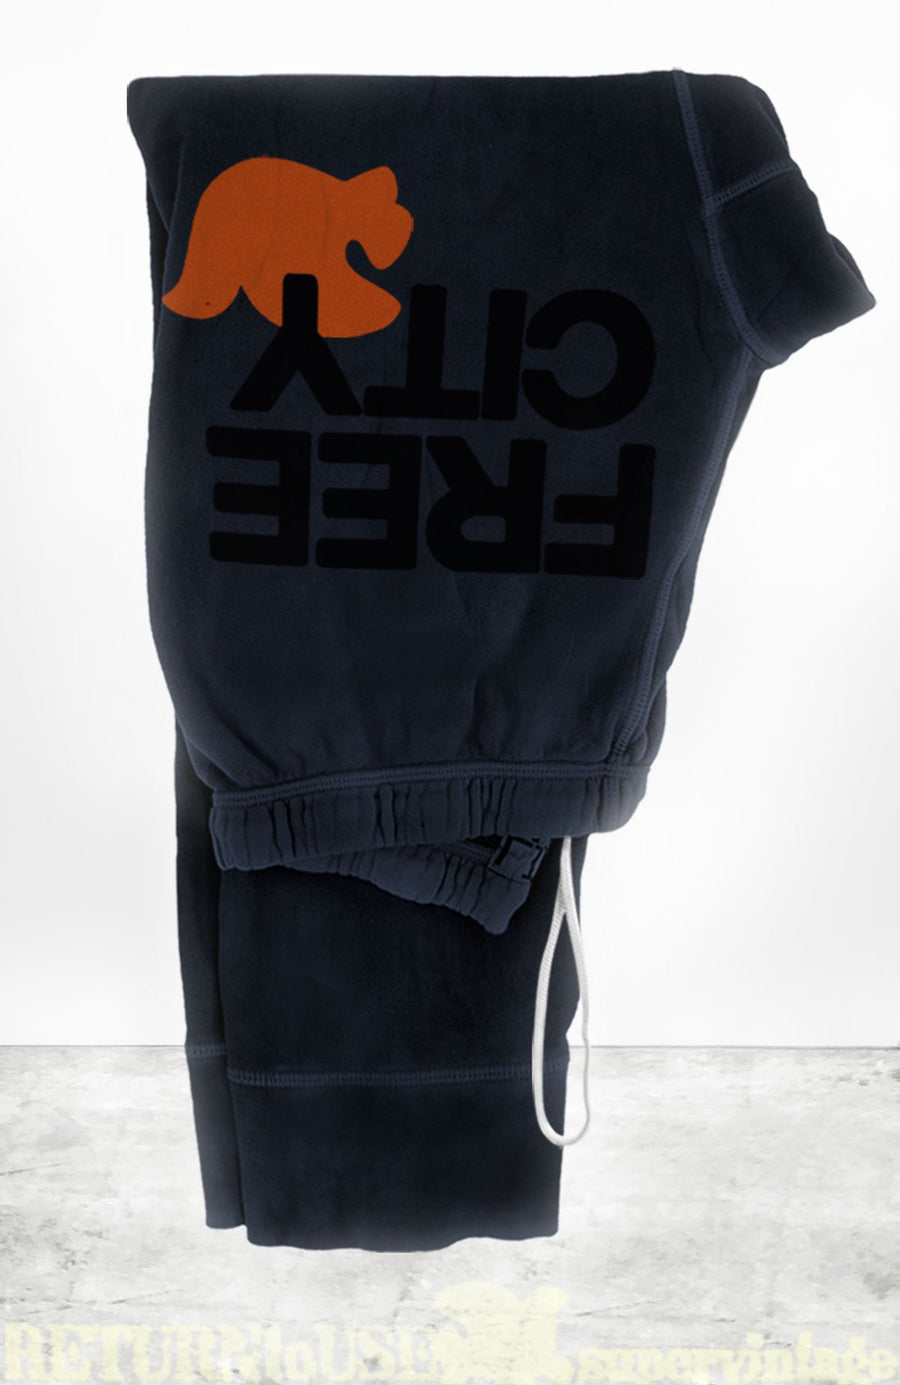 FREECITYLARGE 3/4 SWEATPANT - DEEPSPACE